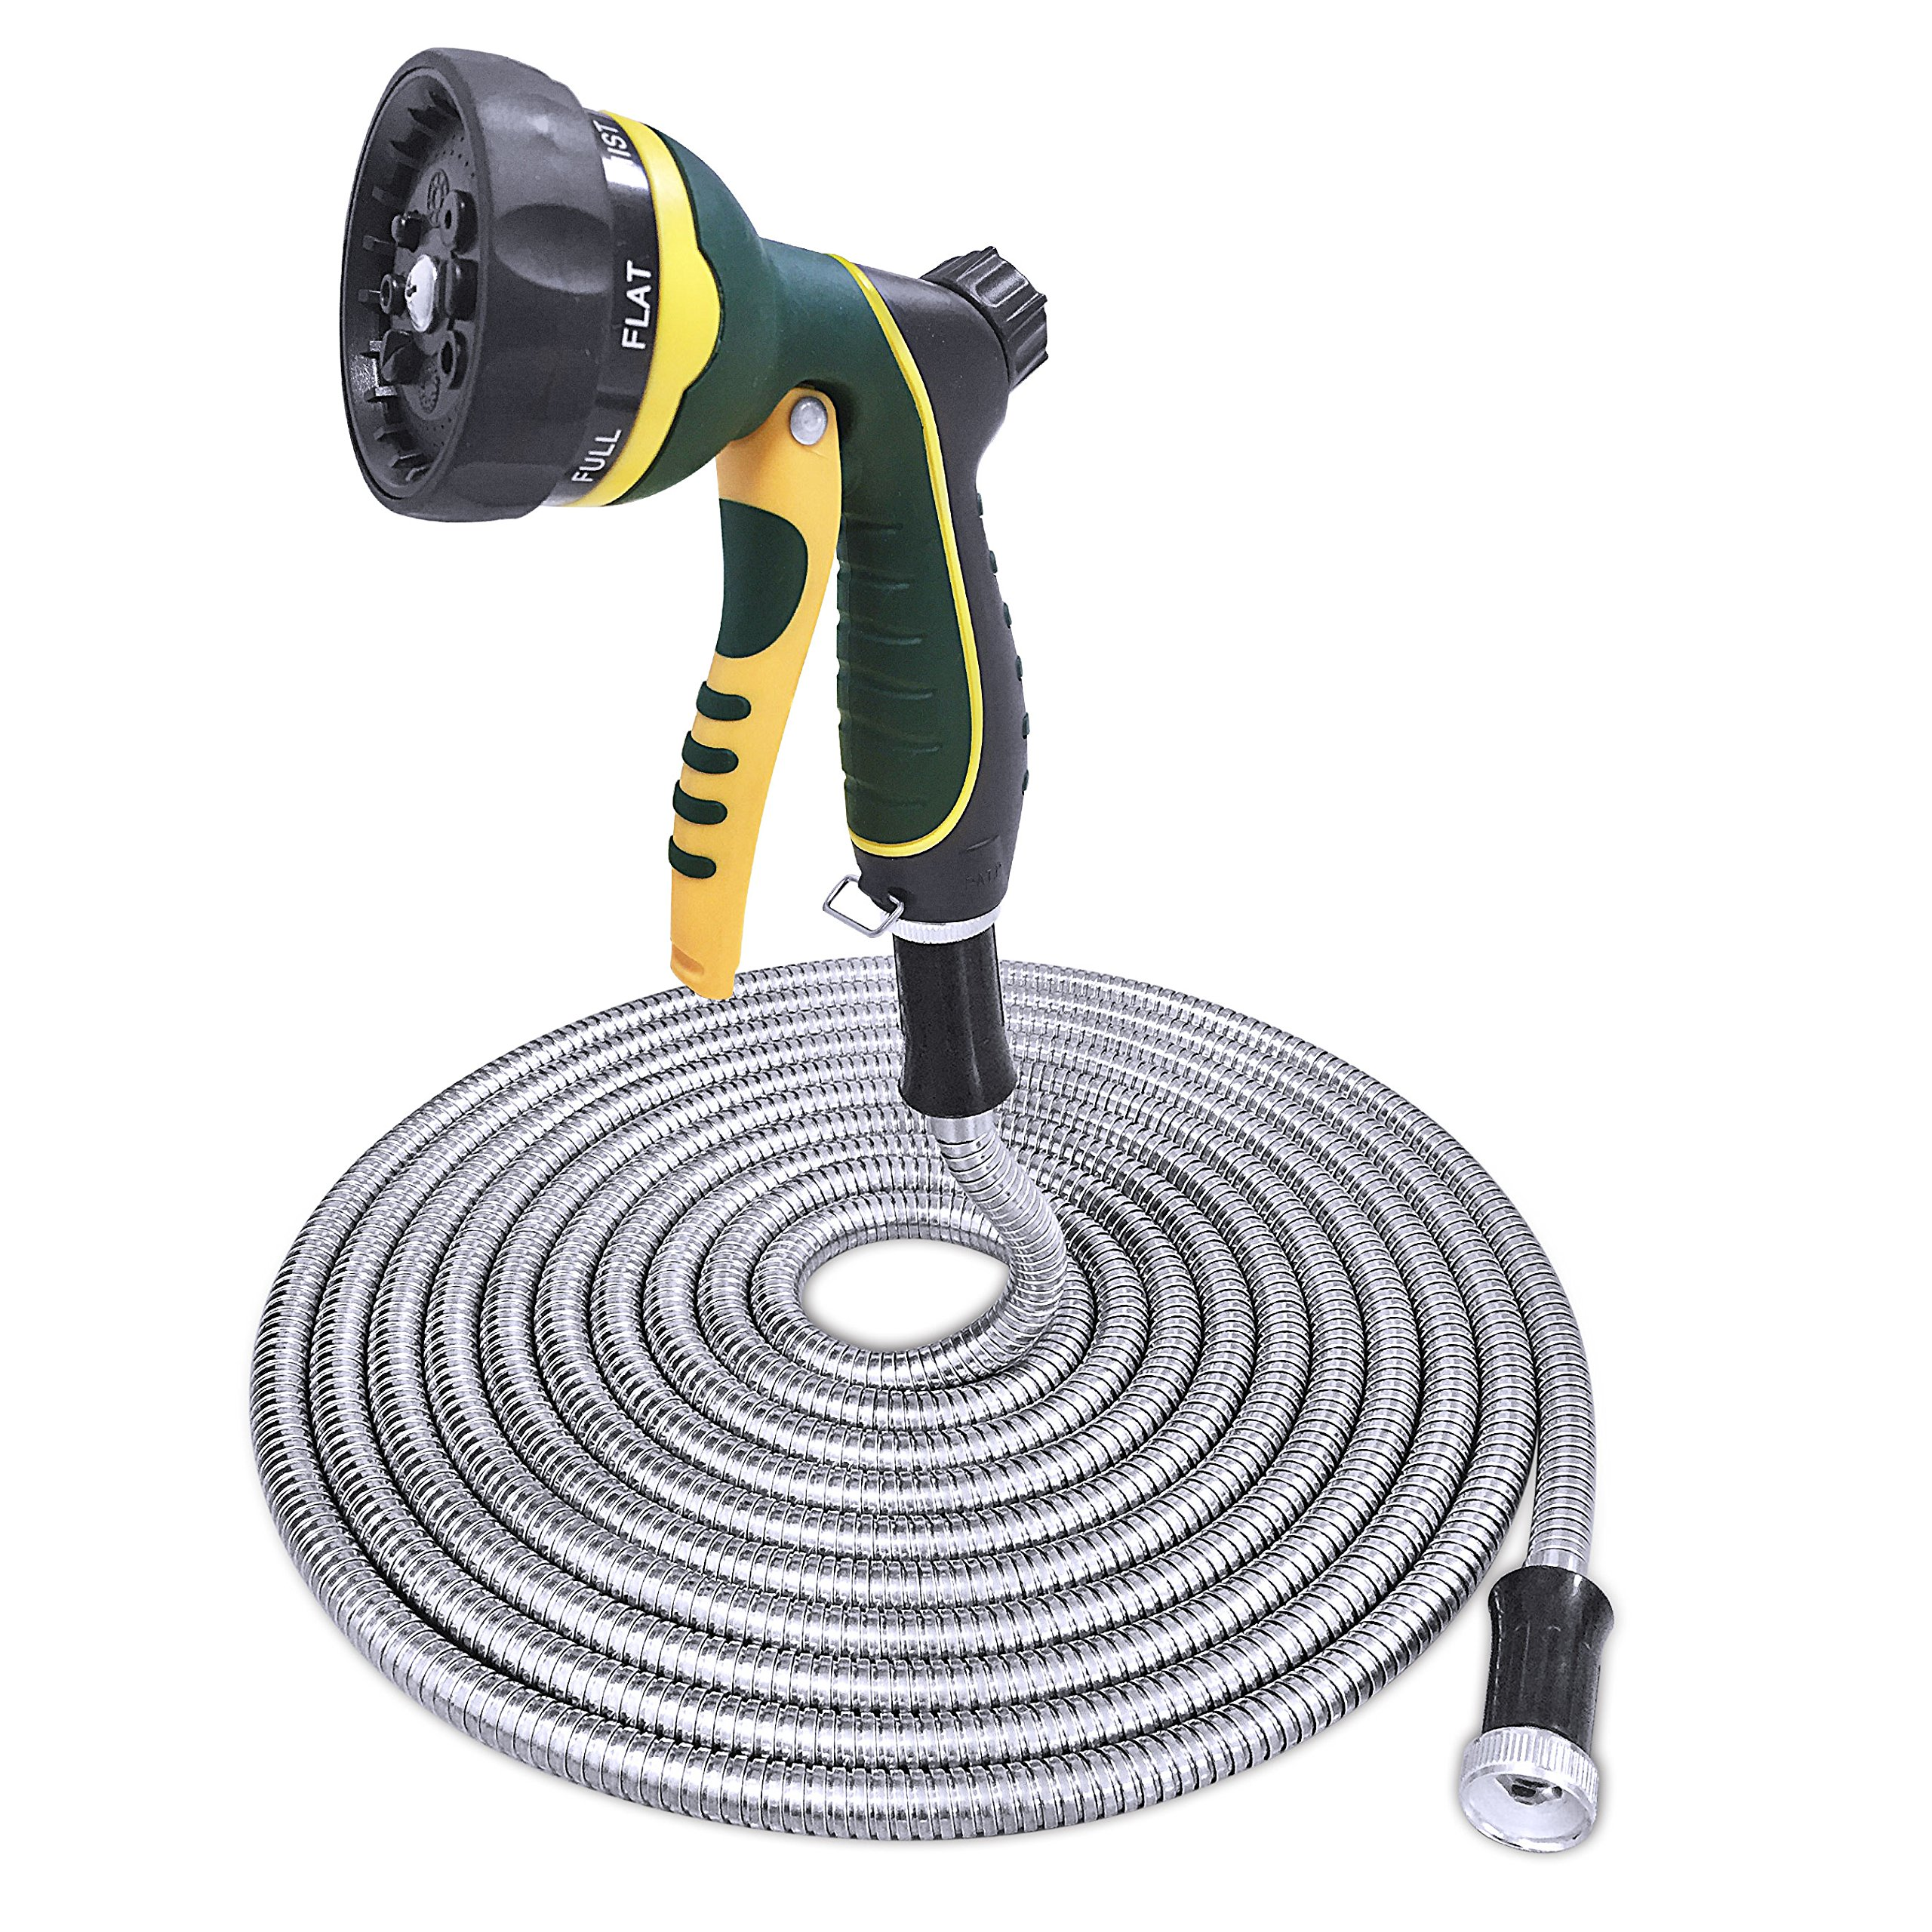 TheFitLife Stainless Steel Metal Garden Hose 304 Stainless Steel Water Hose with Solid Metal Fittings and Newest Spray Nozzle, Lightweight, Kink Free, Durable and Easy to Store (50 Feet) by TheFitLife